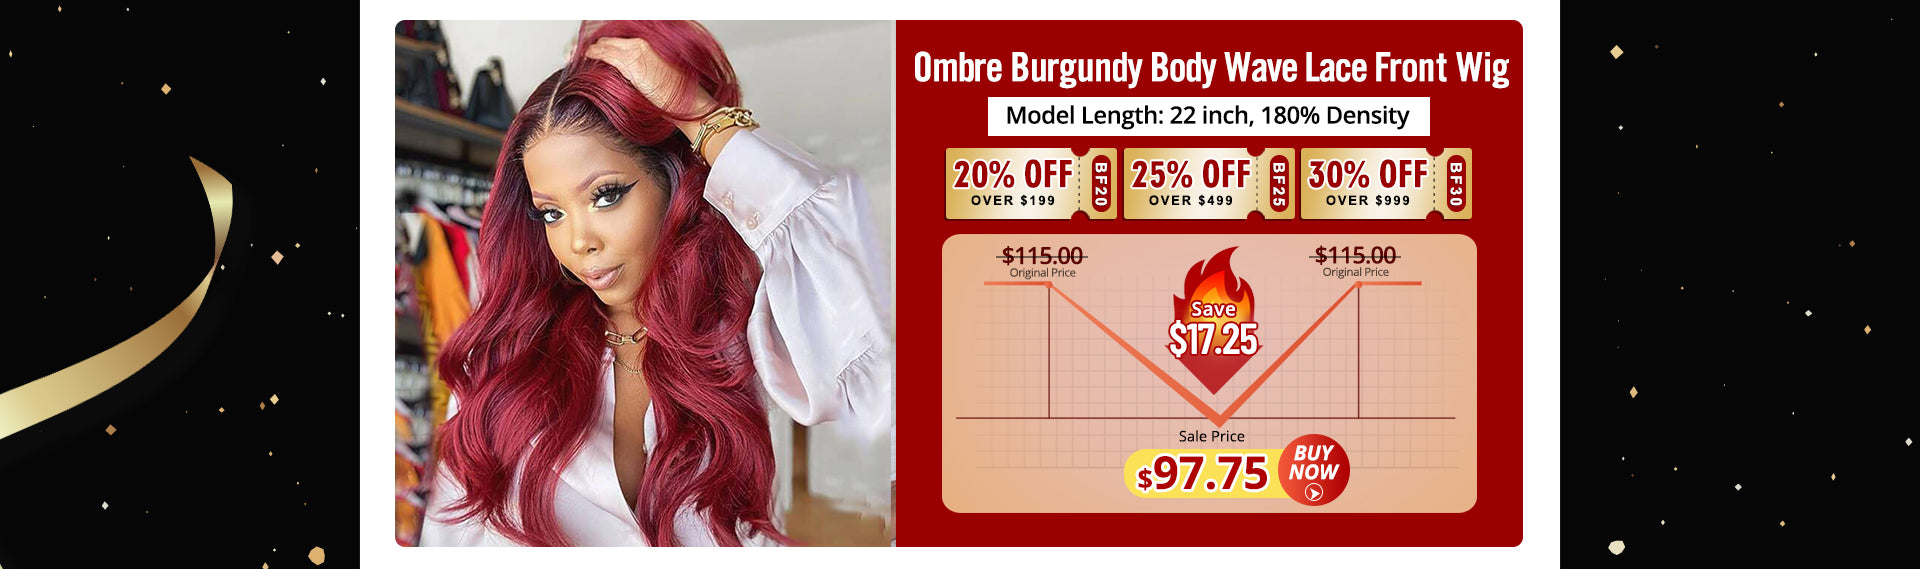 Ombre Burgundy Body Wave Lace Front Wigs